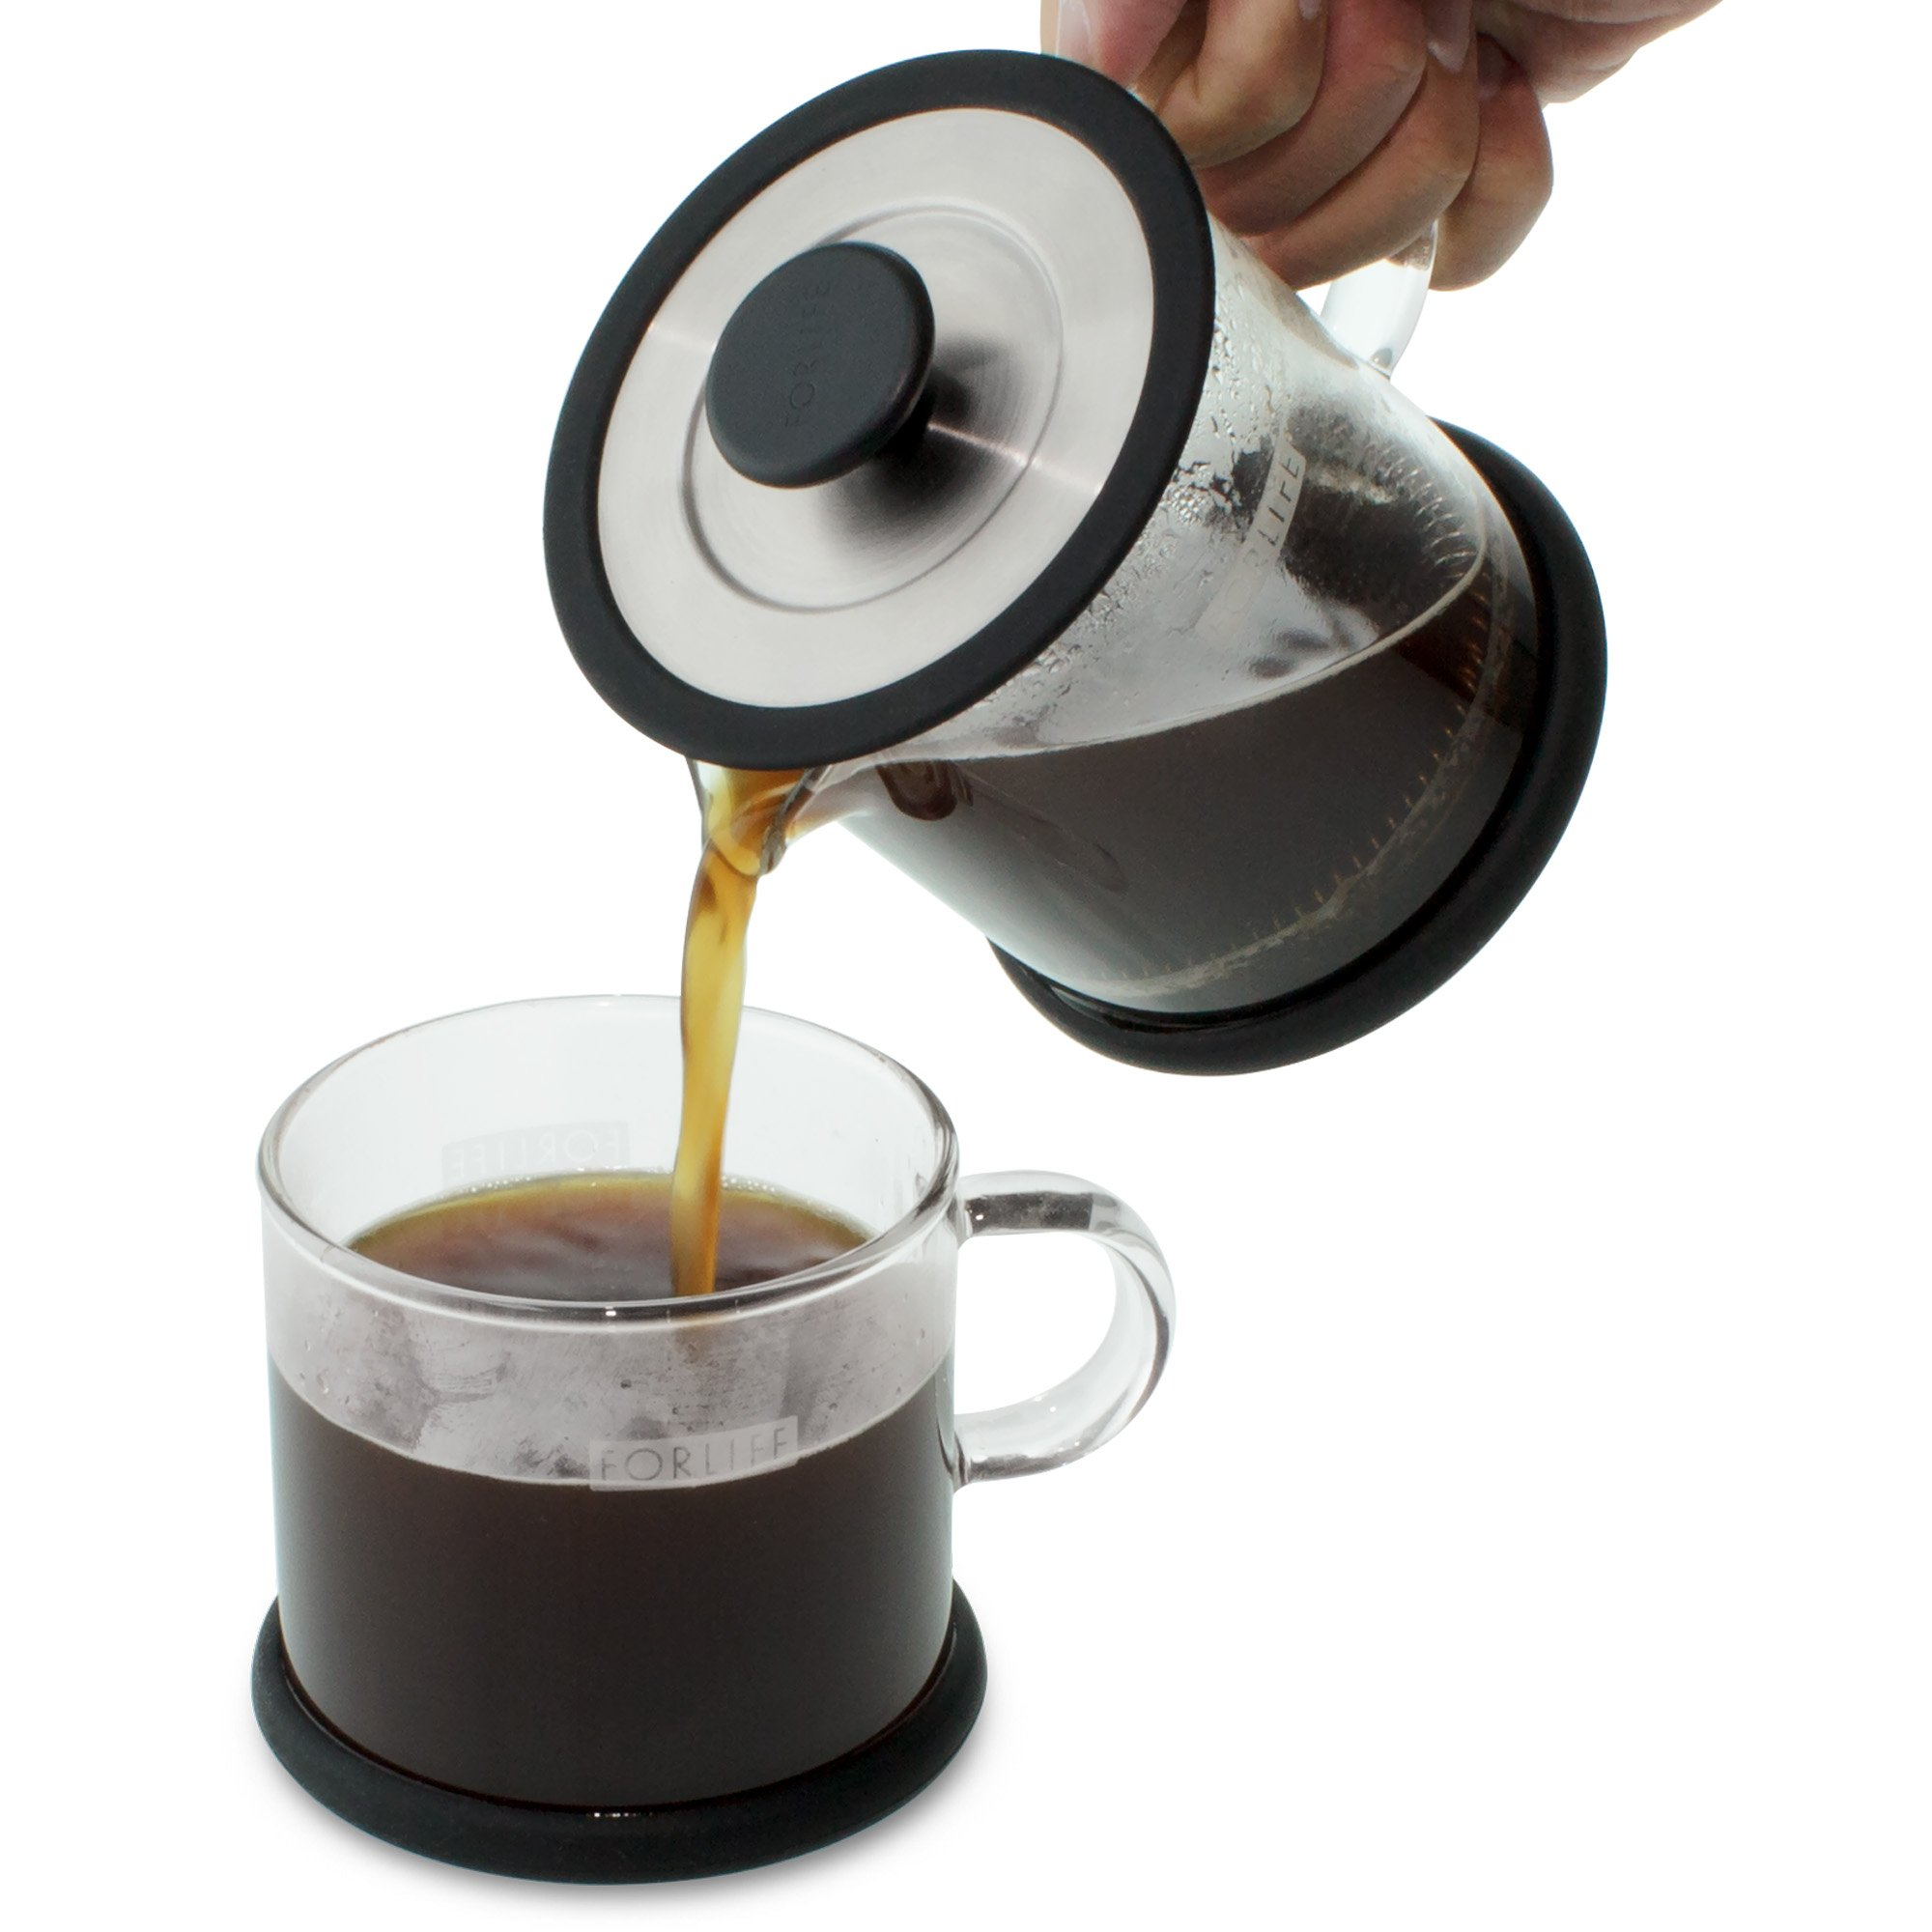 FORLIFE Cafe Style Glass Coffee/Tea Press, 16-Ounce, Black by FORLIFE (Image #5)